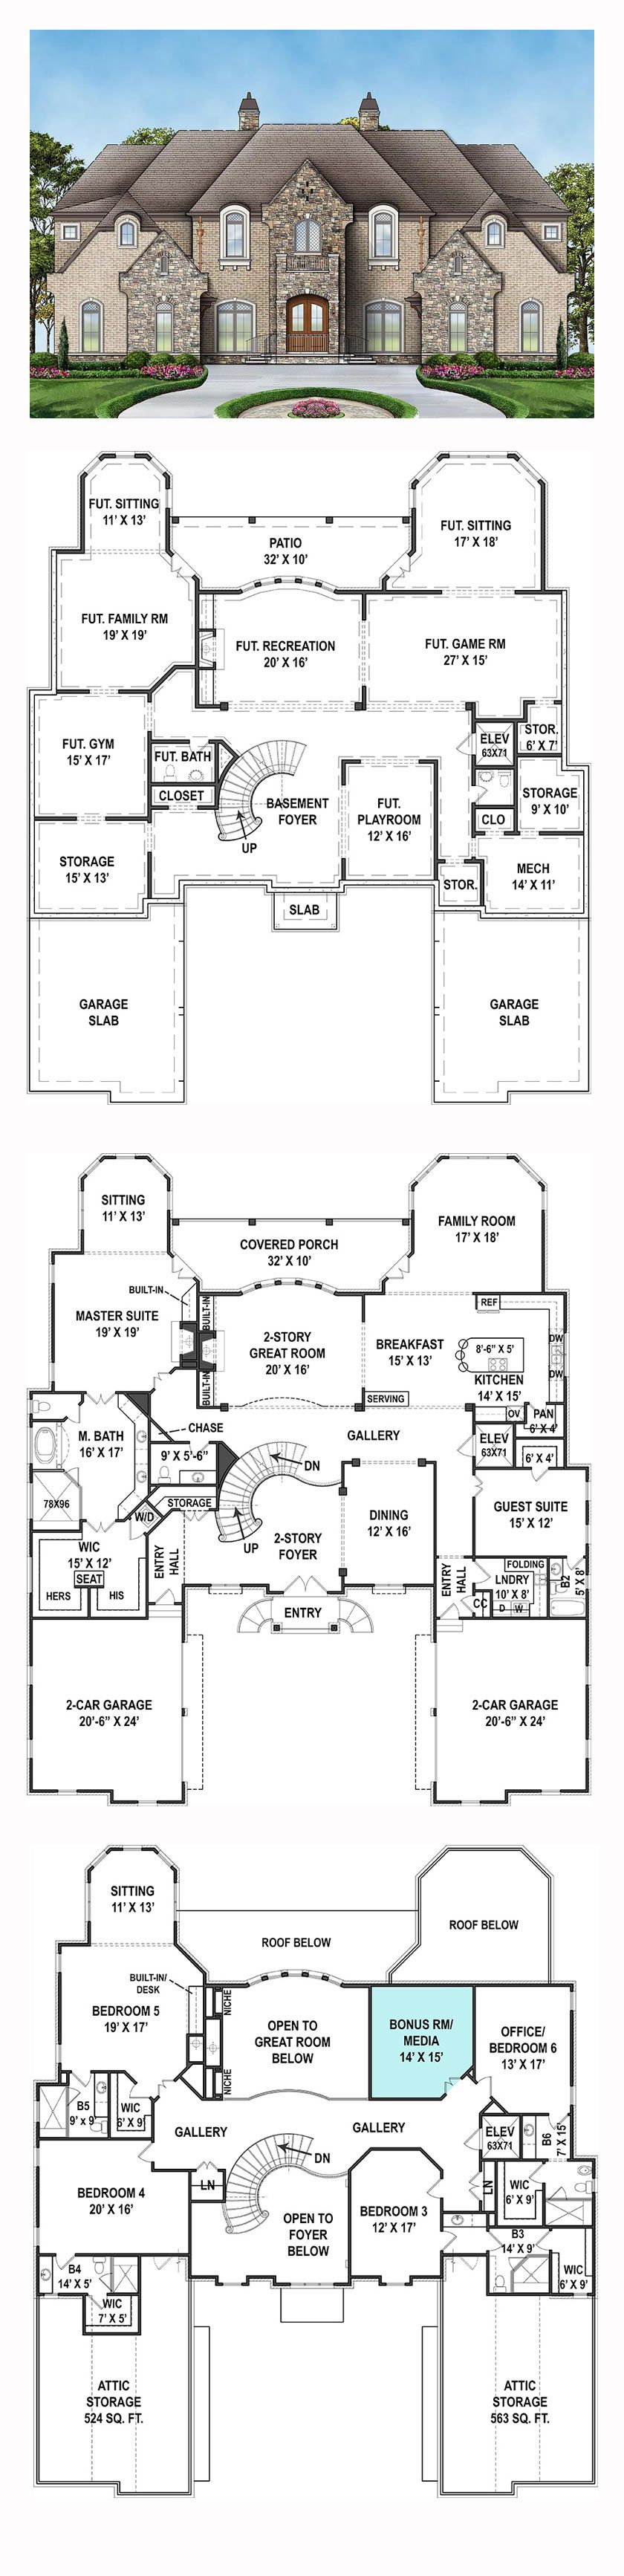 Casa Bellisima House Plan Luxury Floor Plans Mansion Floor - Luxury home designs and floor plans